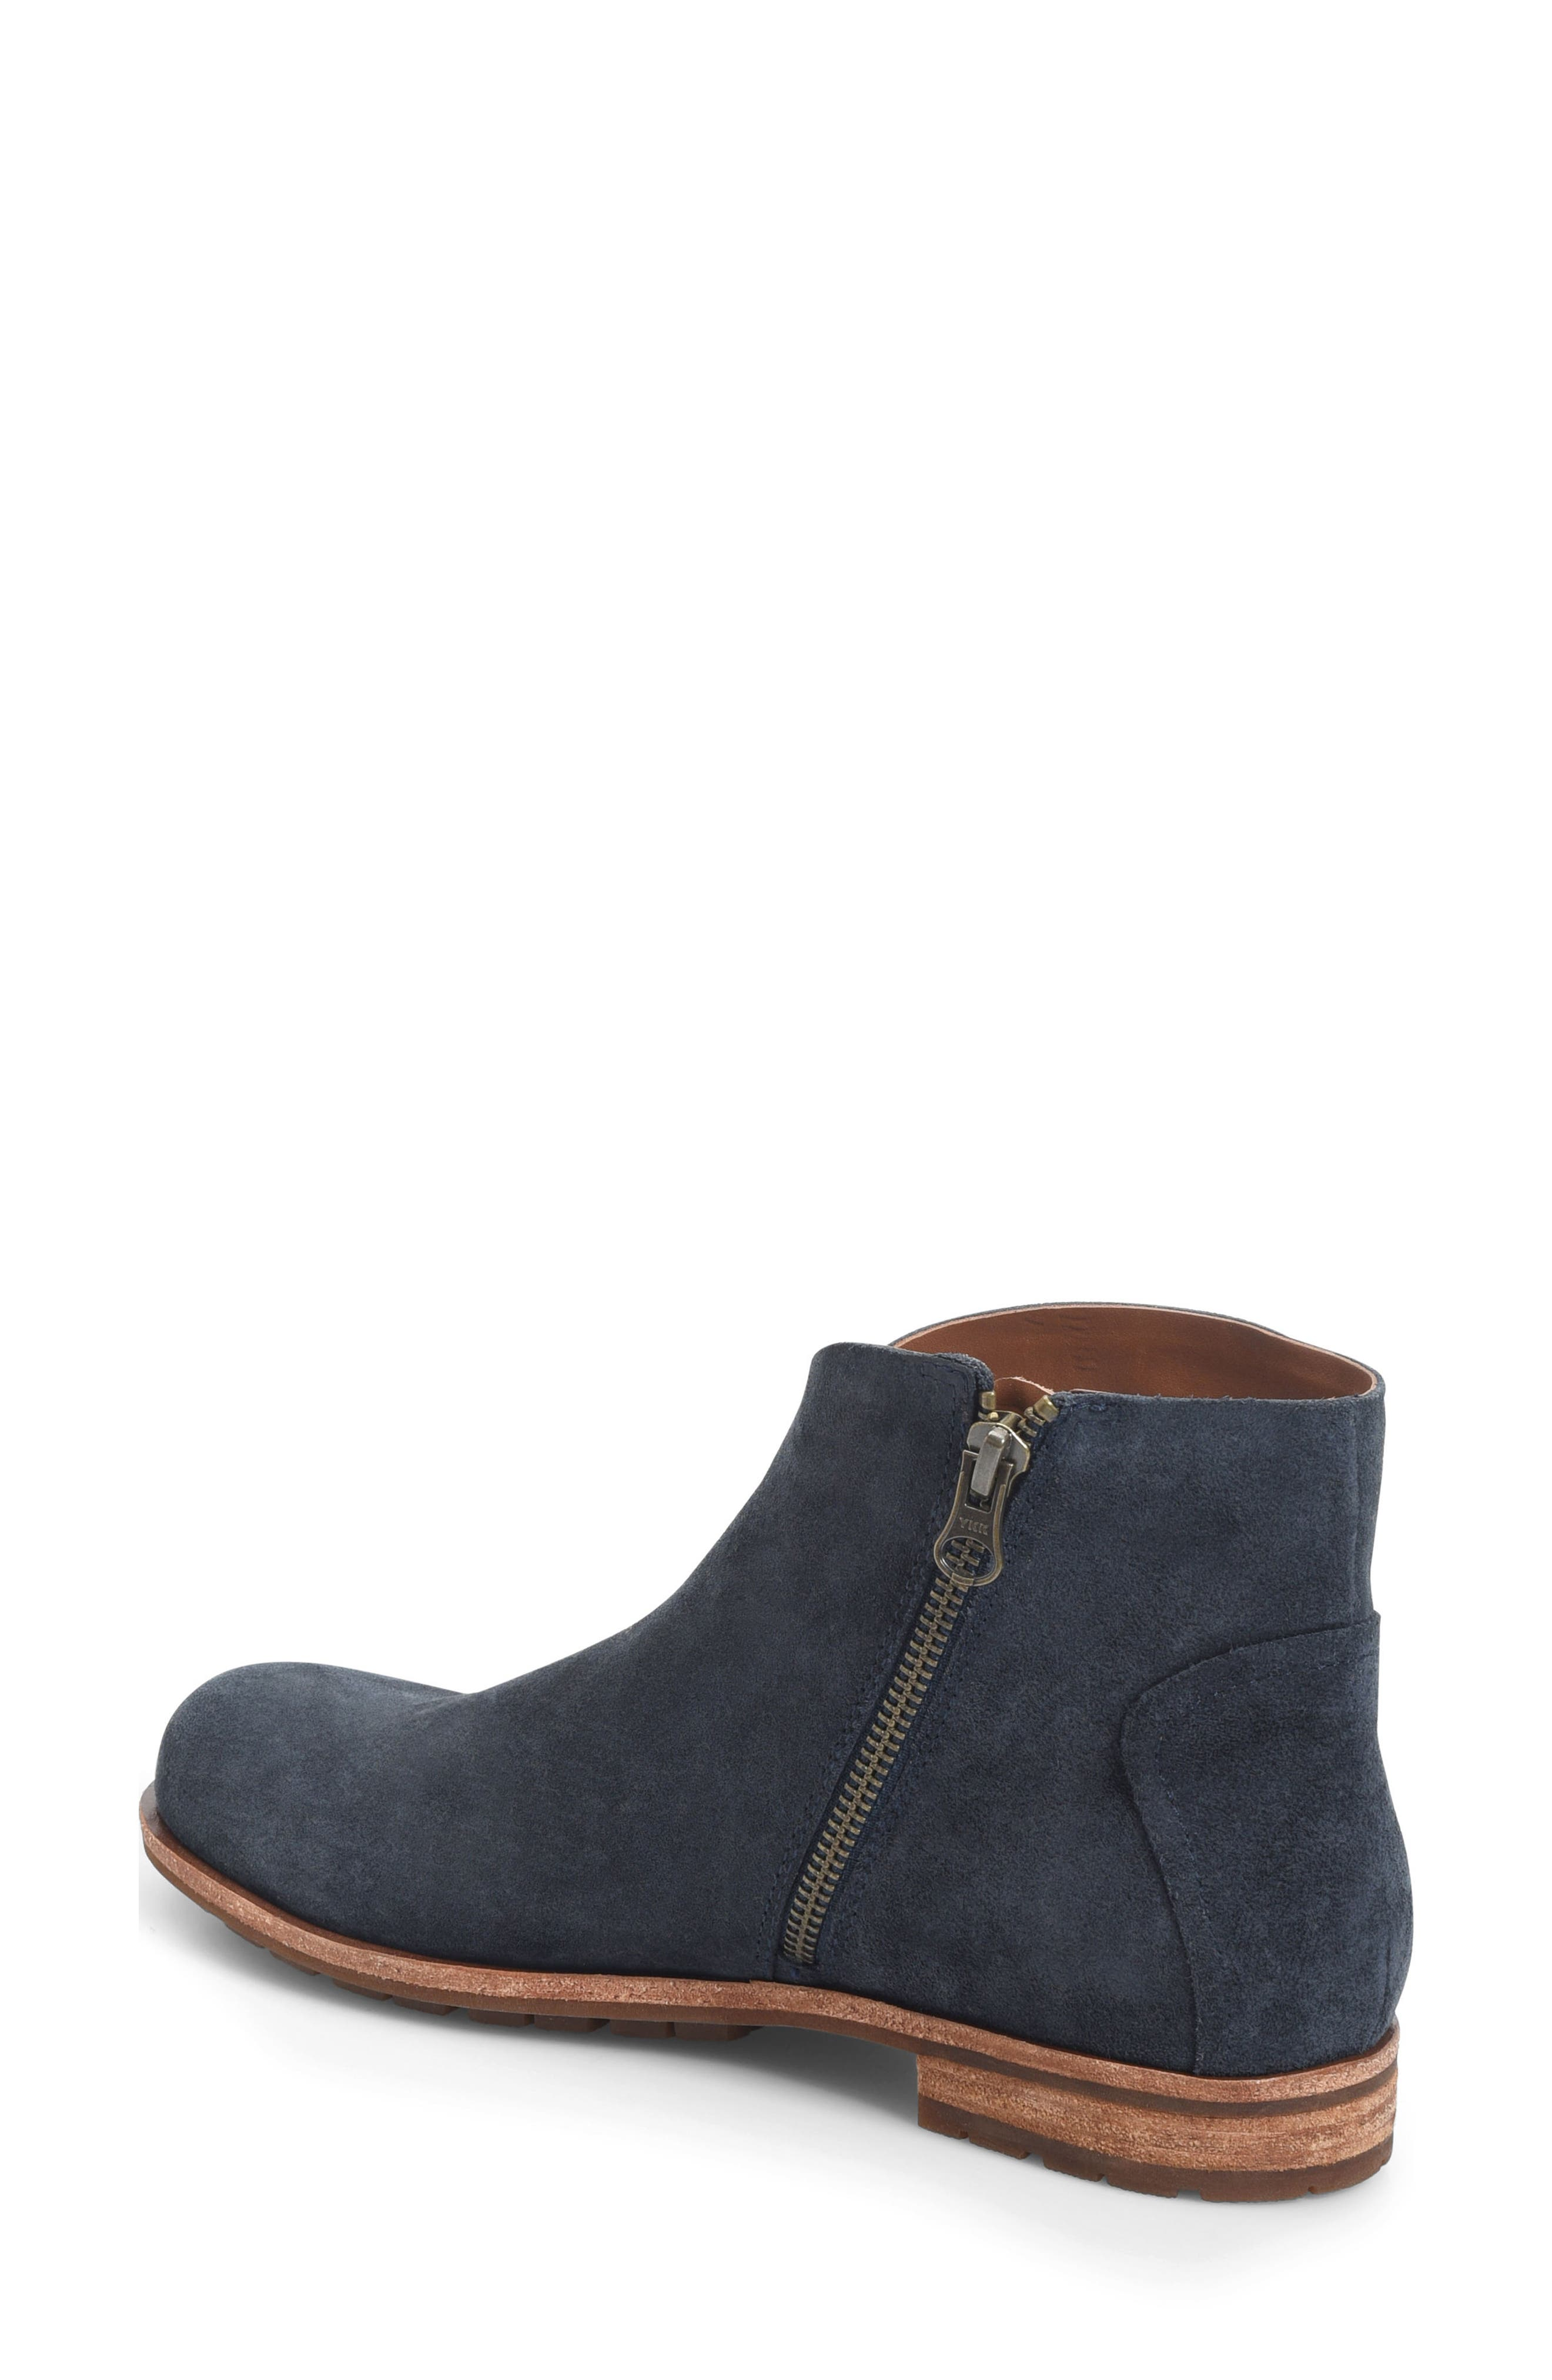 Balsa Boot,                             Alternate thumbnail 2, color,                             Navy Suede